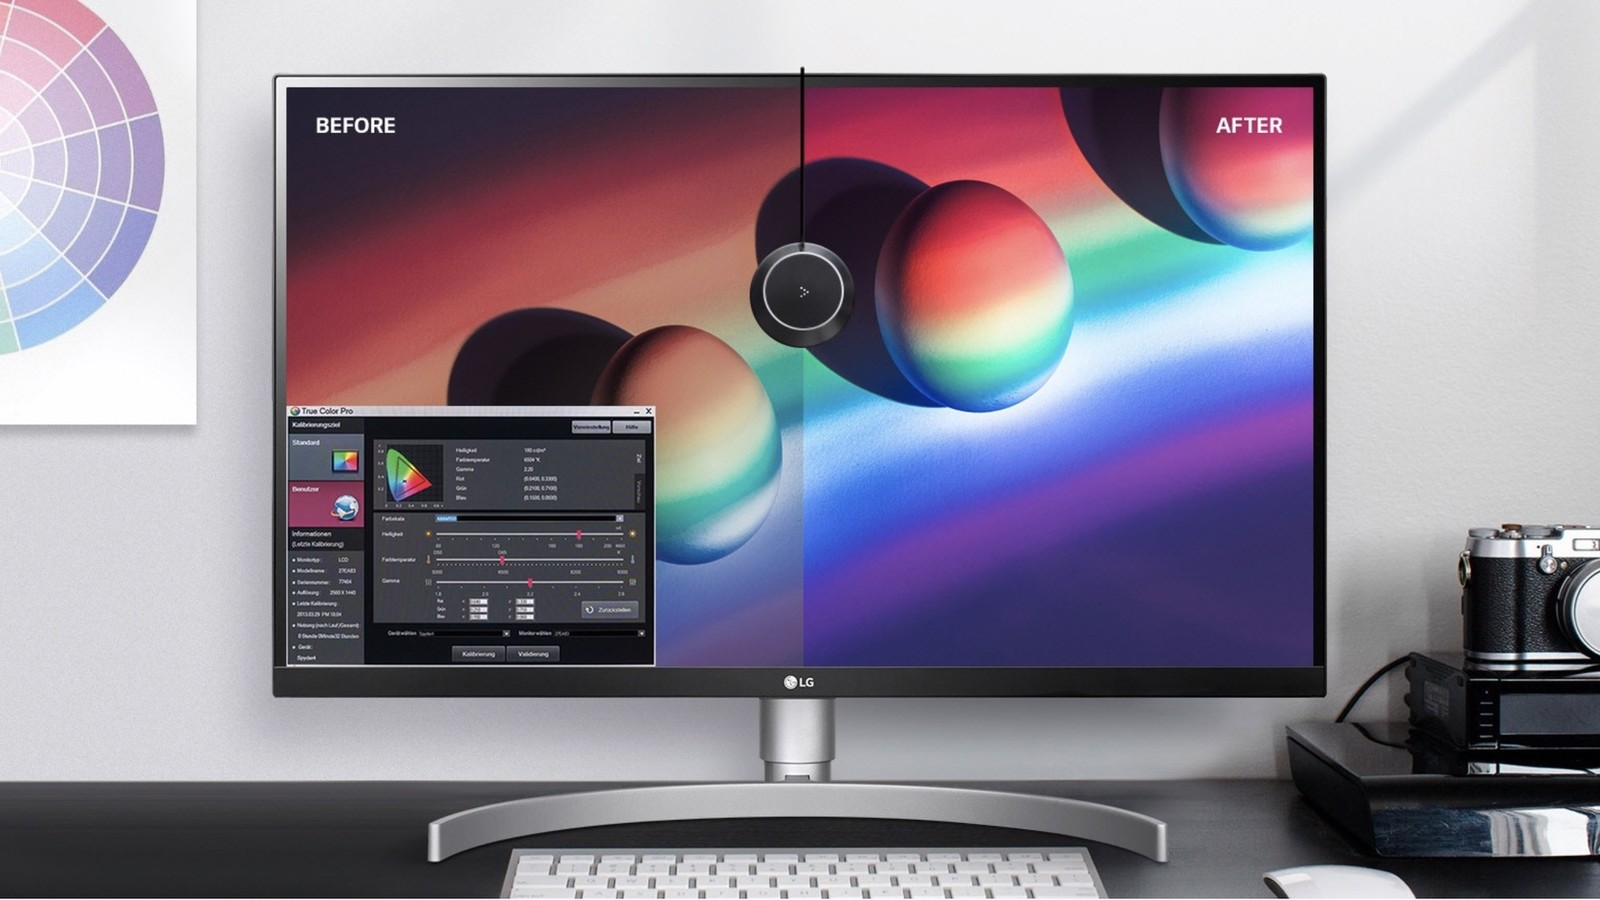 6 Good Mac Compatible Monitors for 2018